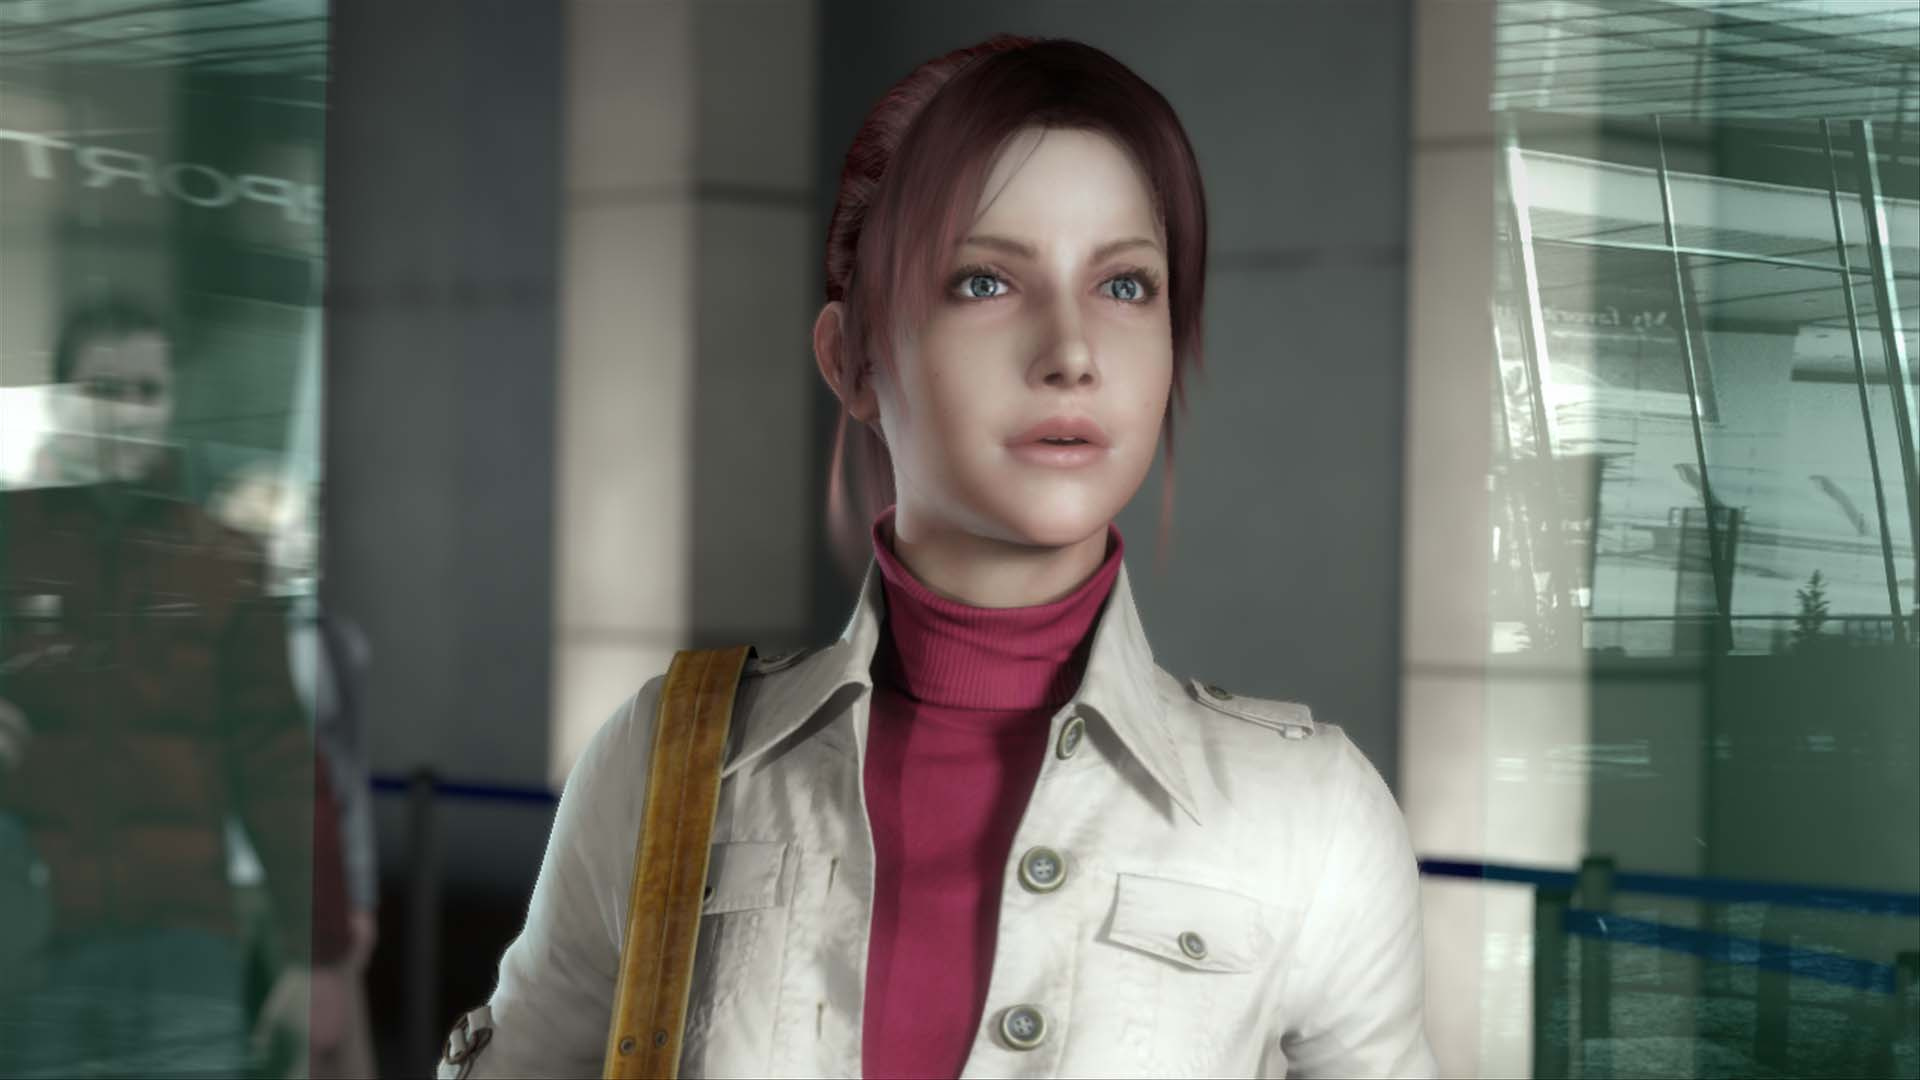 http://images.pushsquare.com/news/2014/09/claire_redfields_red_bangs_return_in_resident_evil_revelations_2/attachment/0/original.jpg